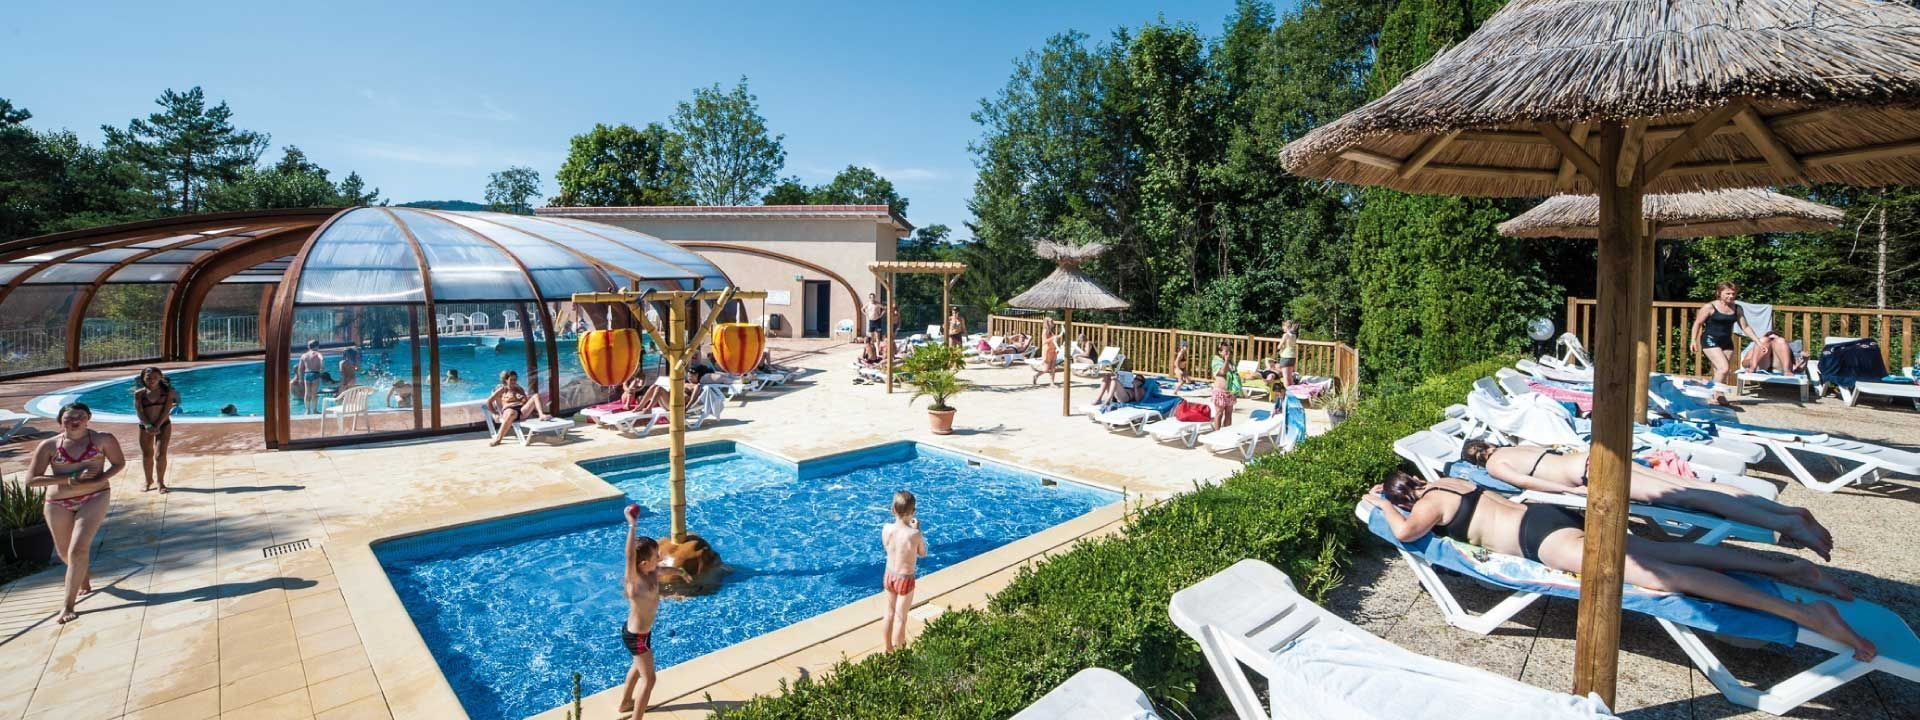 Find Out More Camping Le Moulin (Jura)